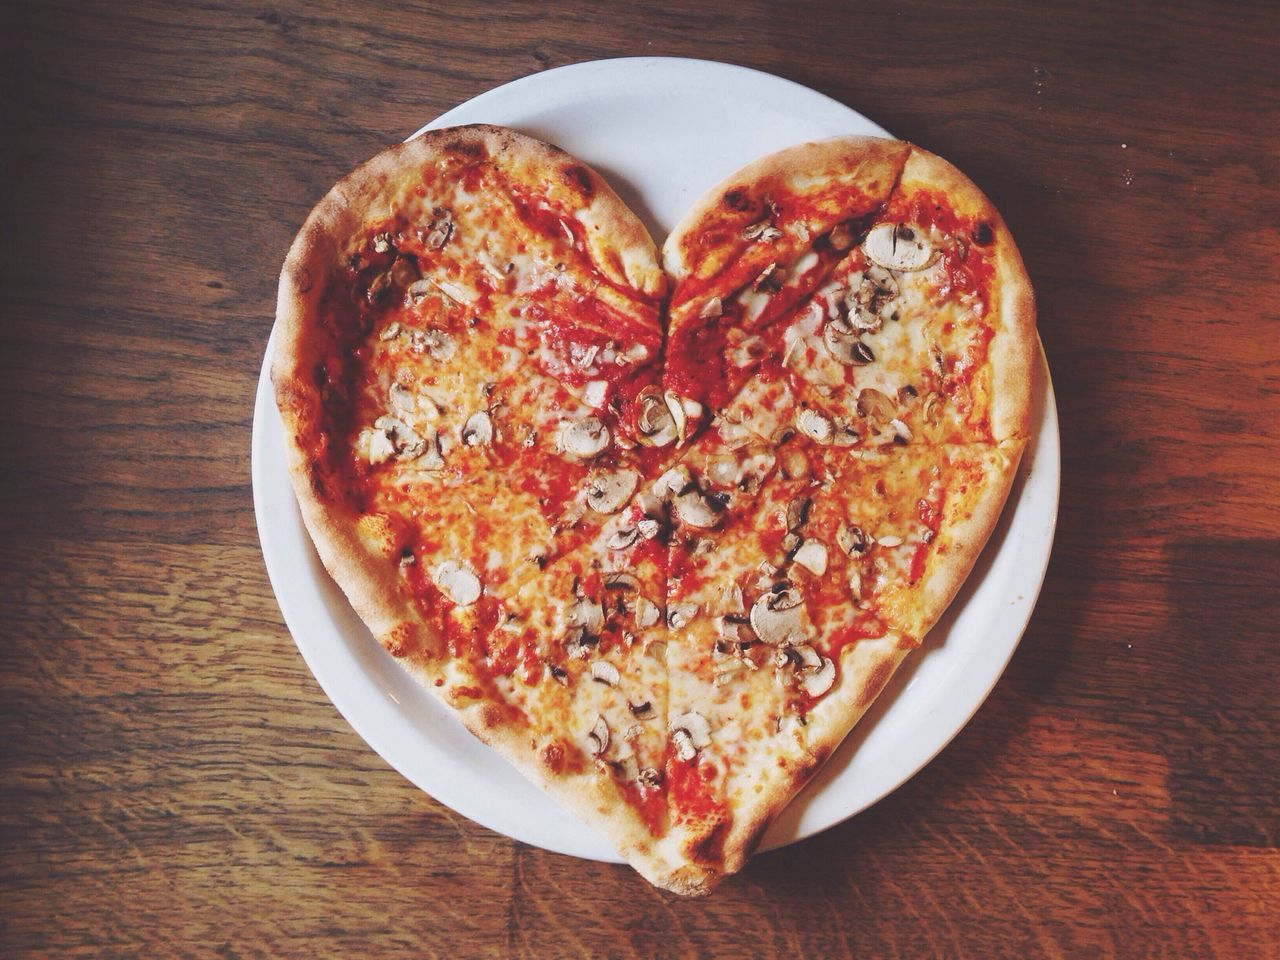 Heart Pizza Food RePicture Love Food Porn Awards EyeEm Bestsellers